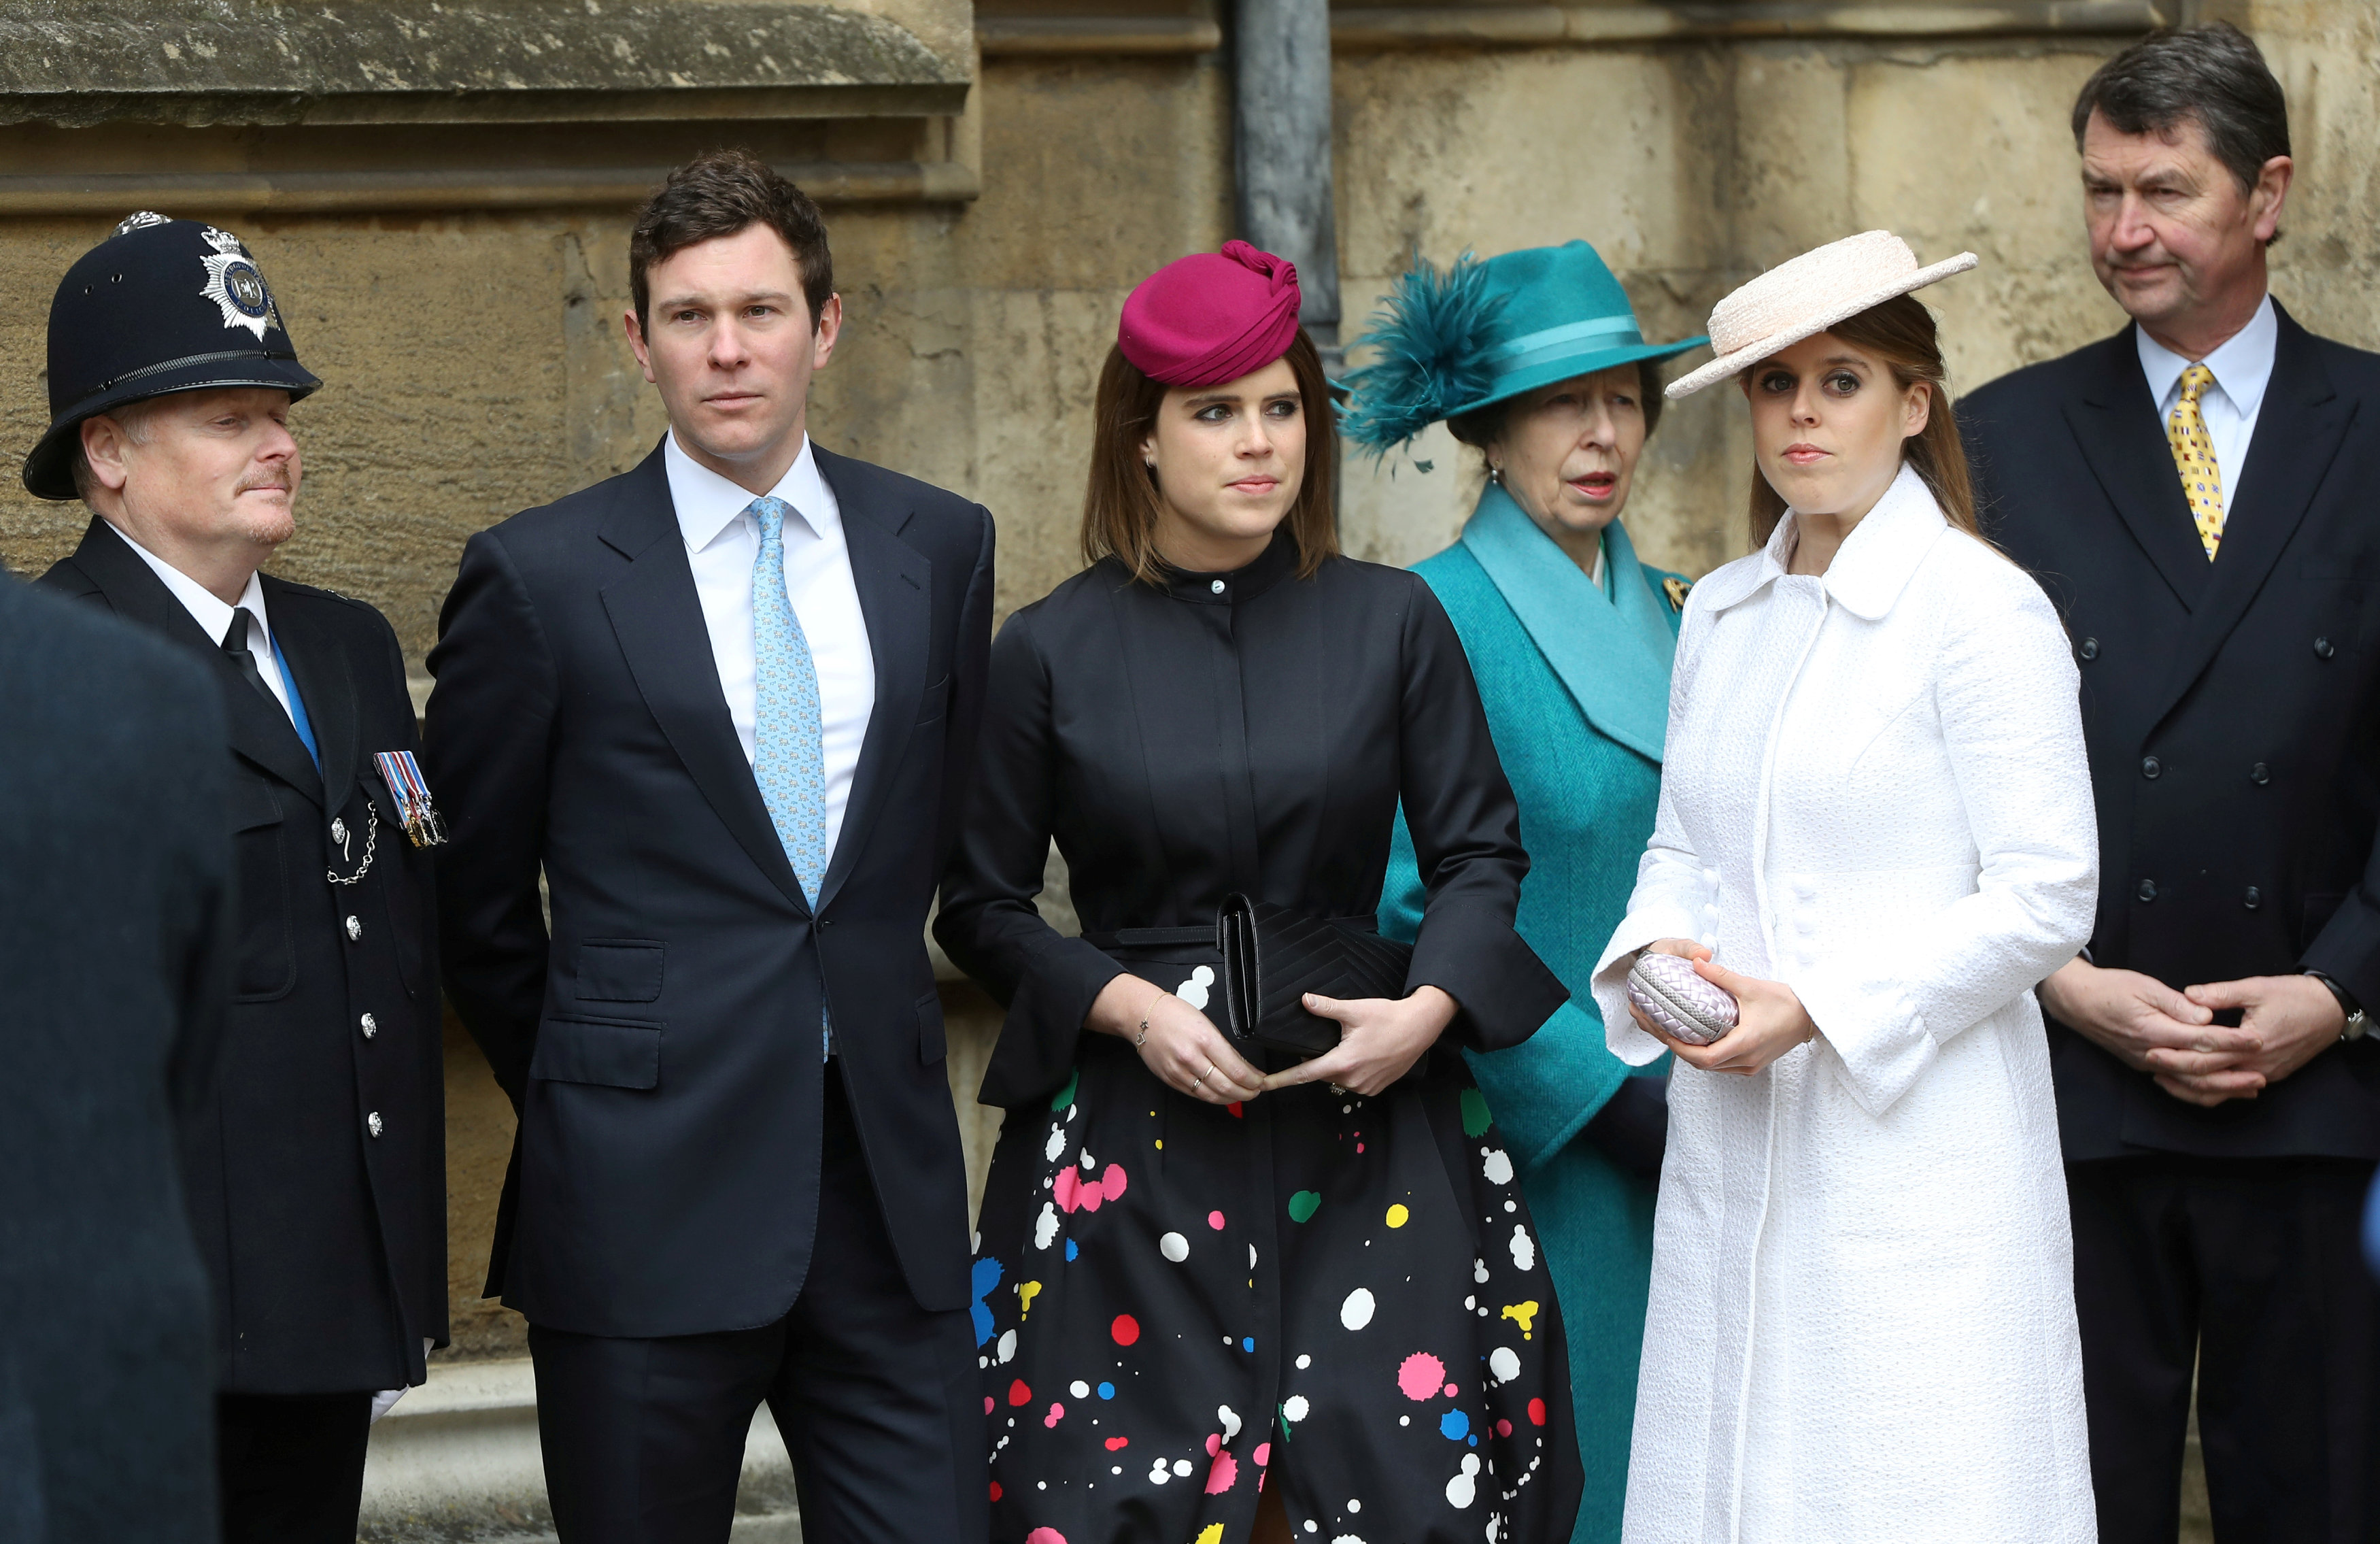 Jack Brooksbank, Princess Eugenie, Princess Anne, Princess Royal, Princess Beatrice and Vice Admiral Sir Timothy Laurence arrive for the Easter Mattins Service at St. George's Chapel at Windsor Castle on April 1, 2018 in Windsor, England.